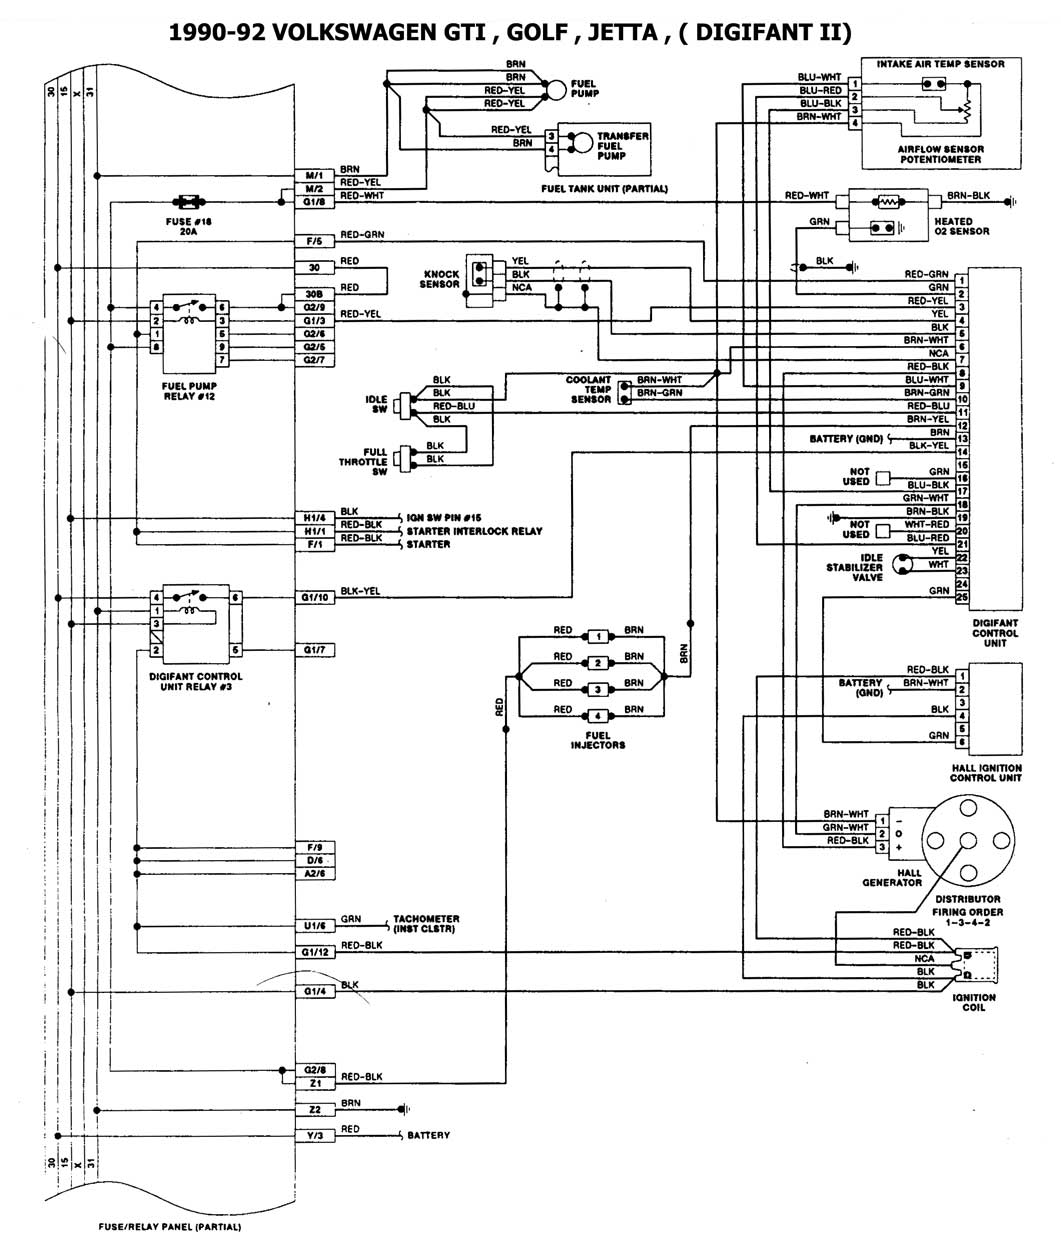 Civic Ecu Wiring Diagram Civic Motor Wiring